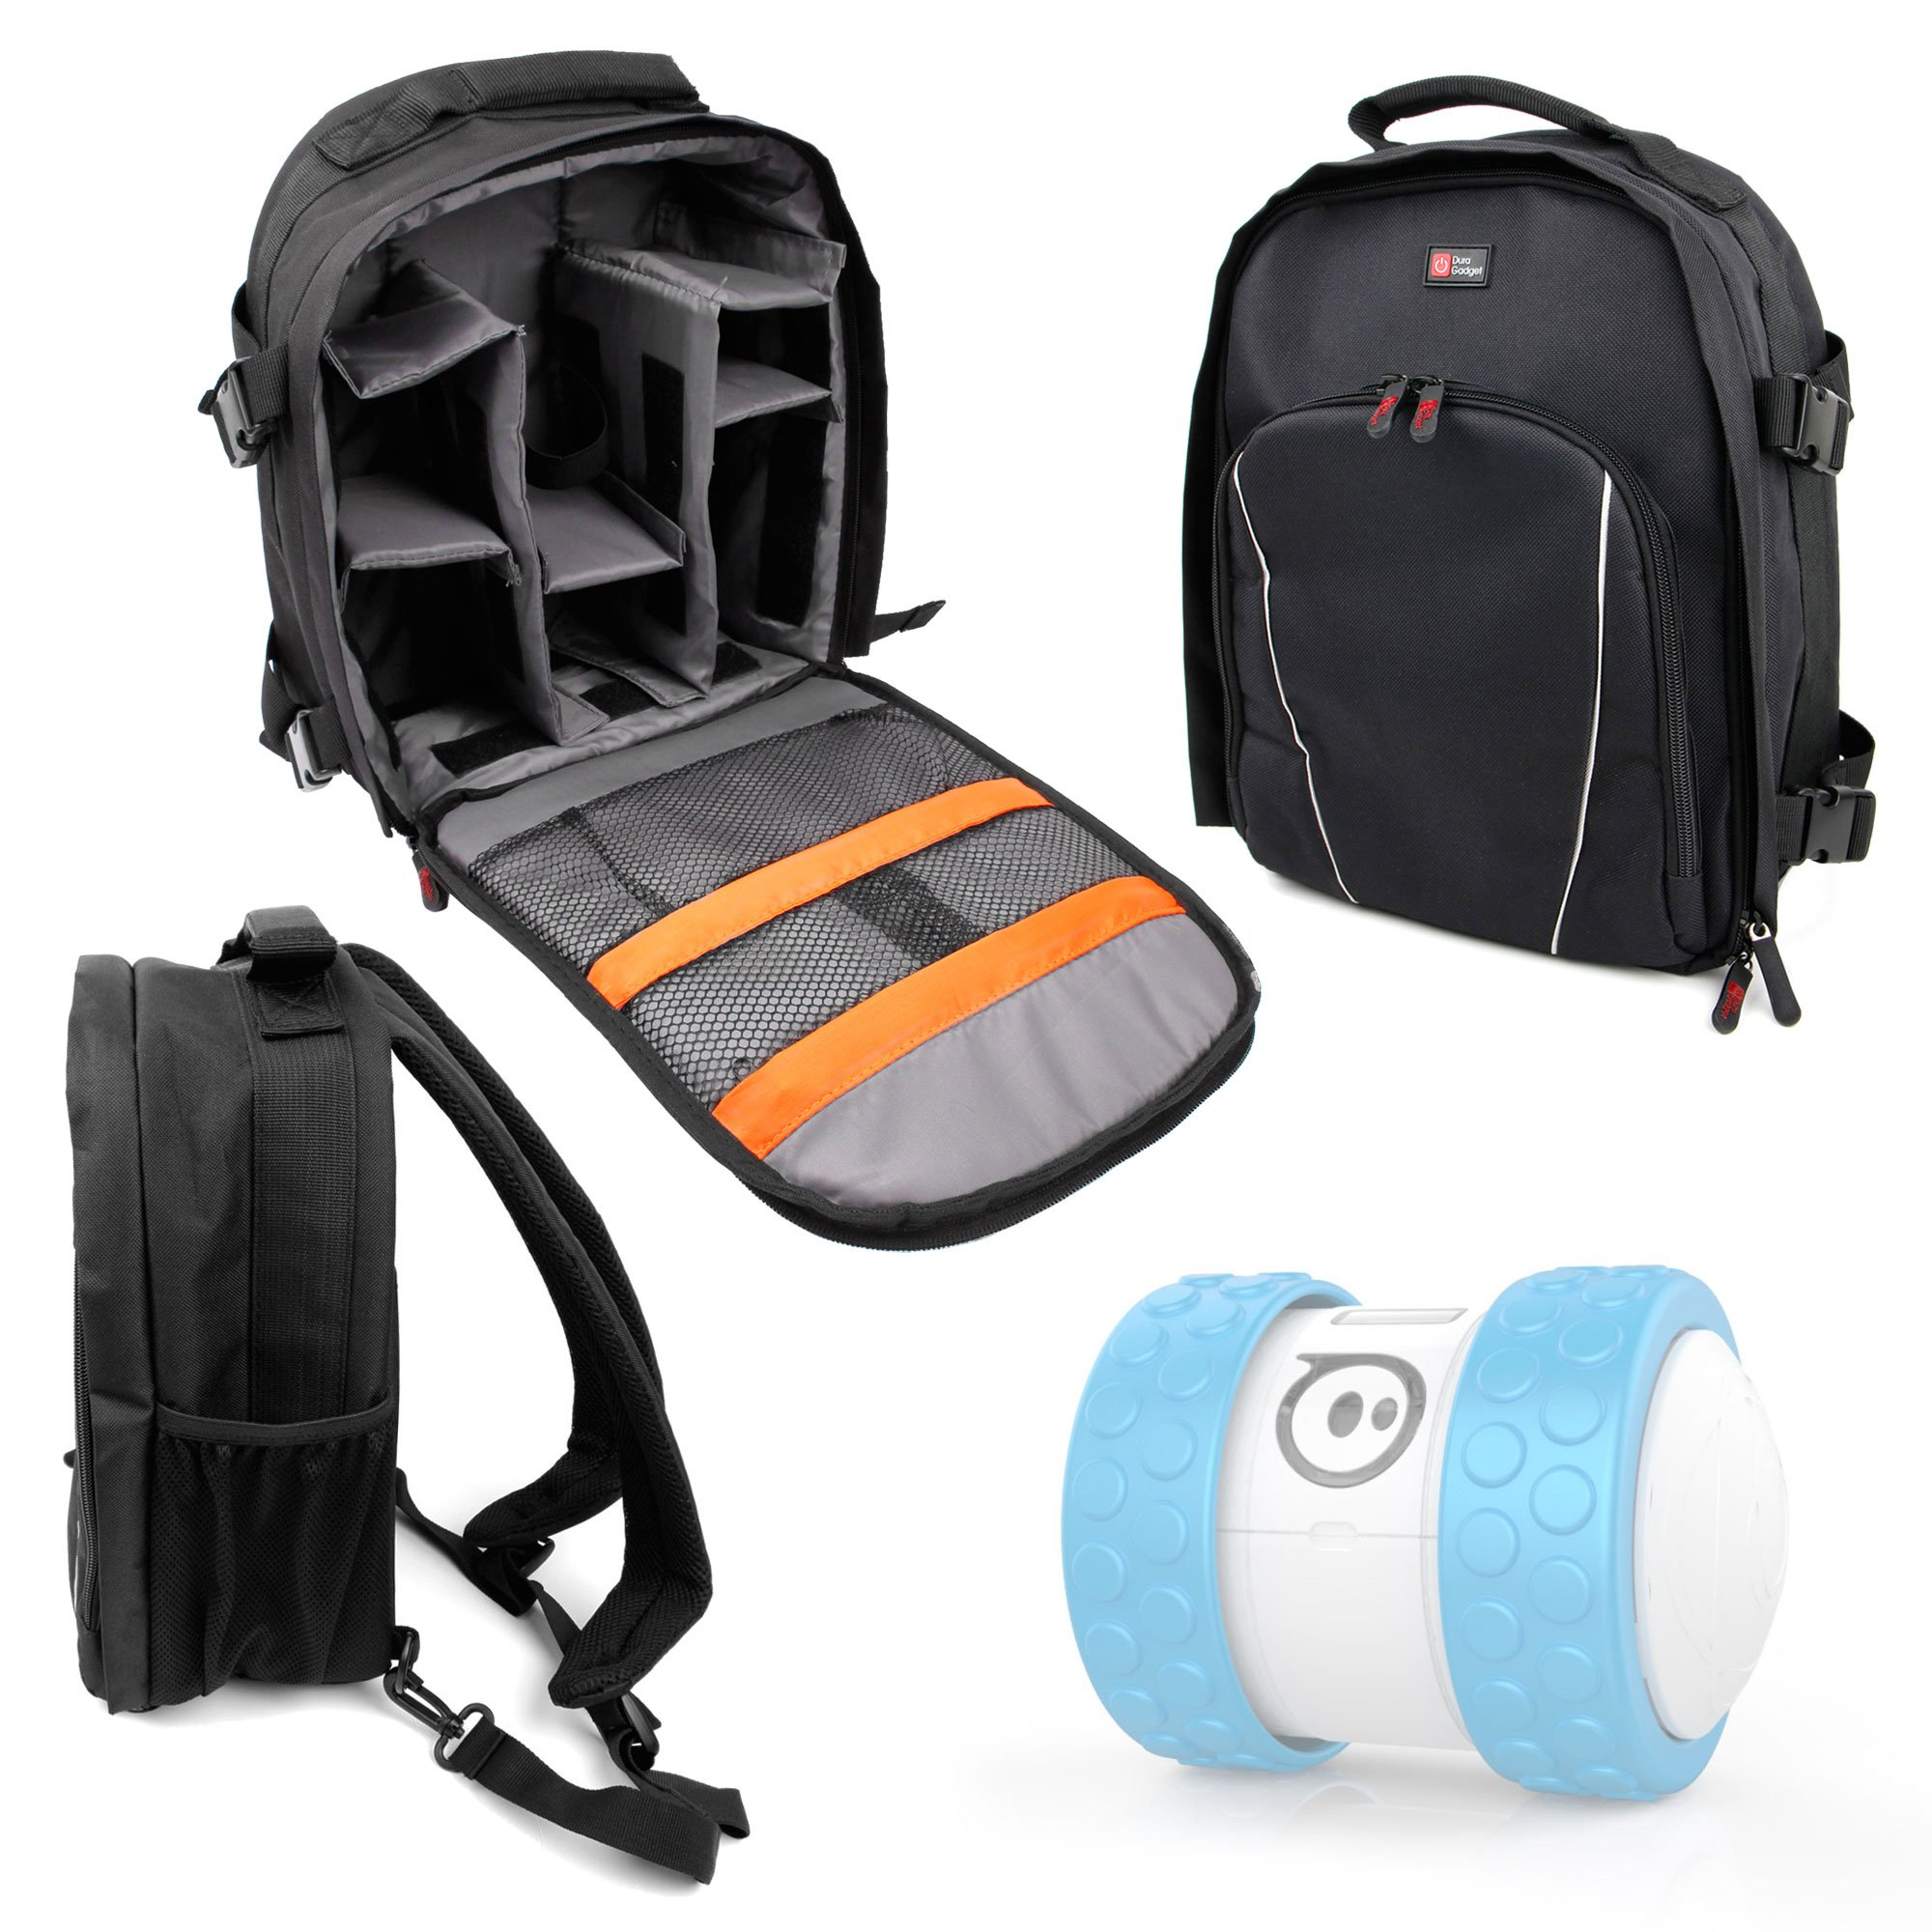 DURAGADGET Premium Quality, Water-Resistant Compact Backpack Organiser - Compatible with Sphero Ollie/Sphero Ball Robot - with Customisable Interior & Additional Raincover